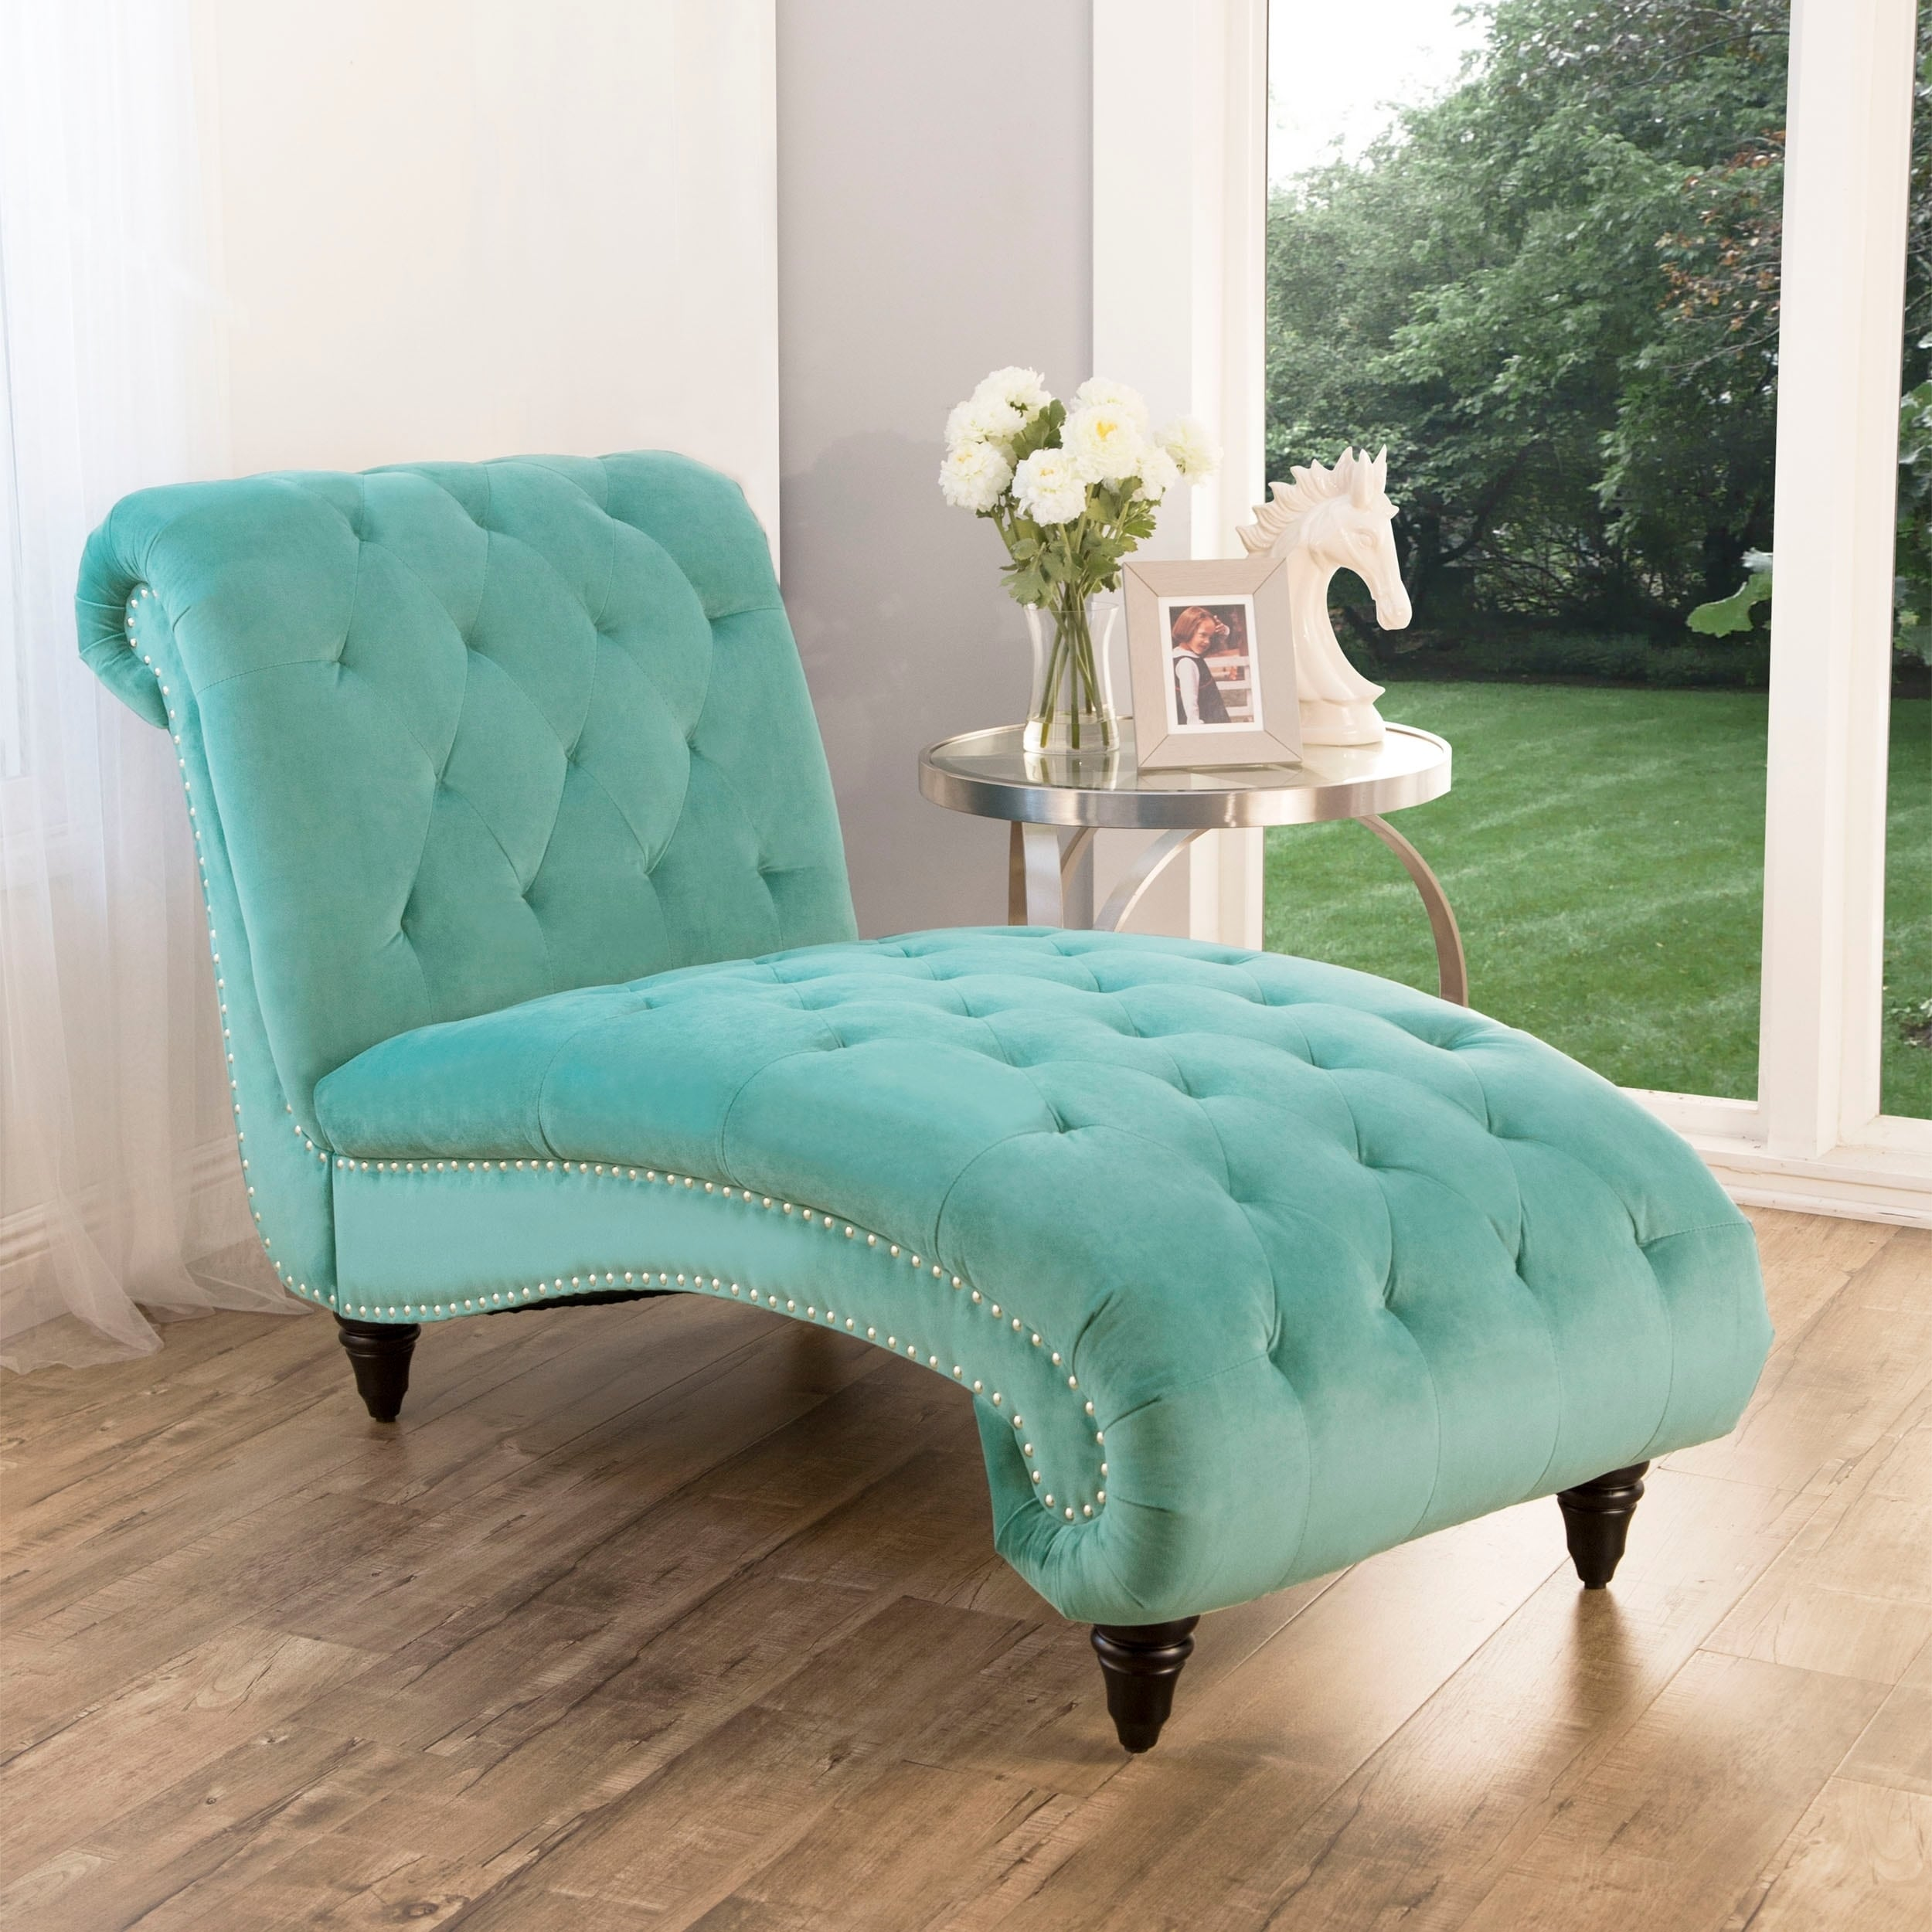 Blue Abbyson Living Tufted Oversized Chaise Lounge Living Room Furniture Furniture